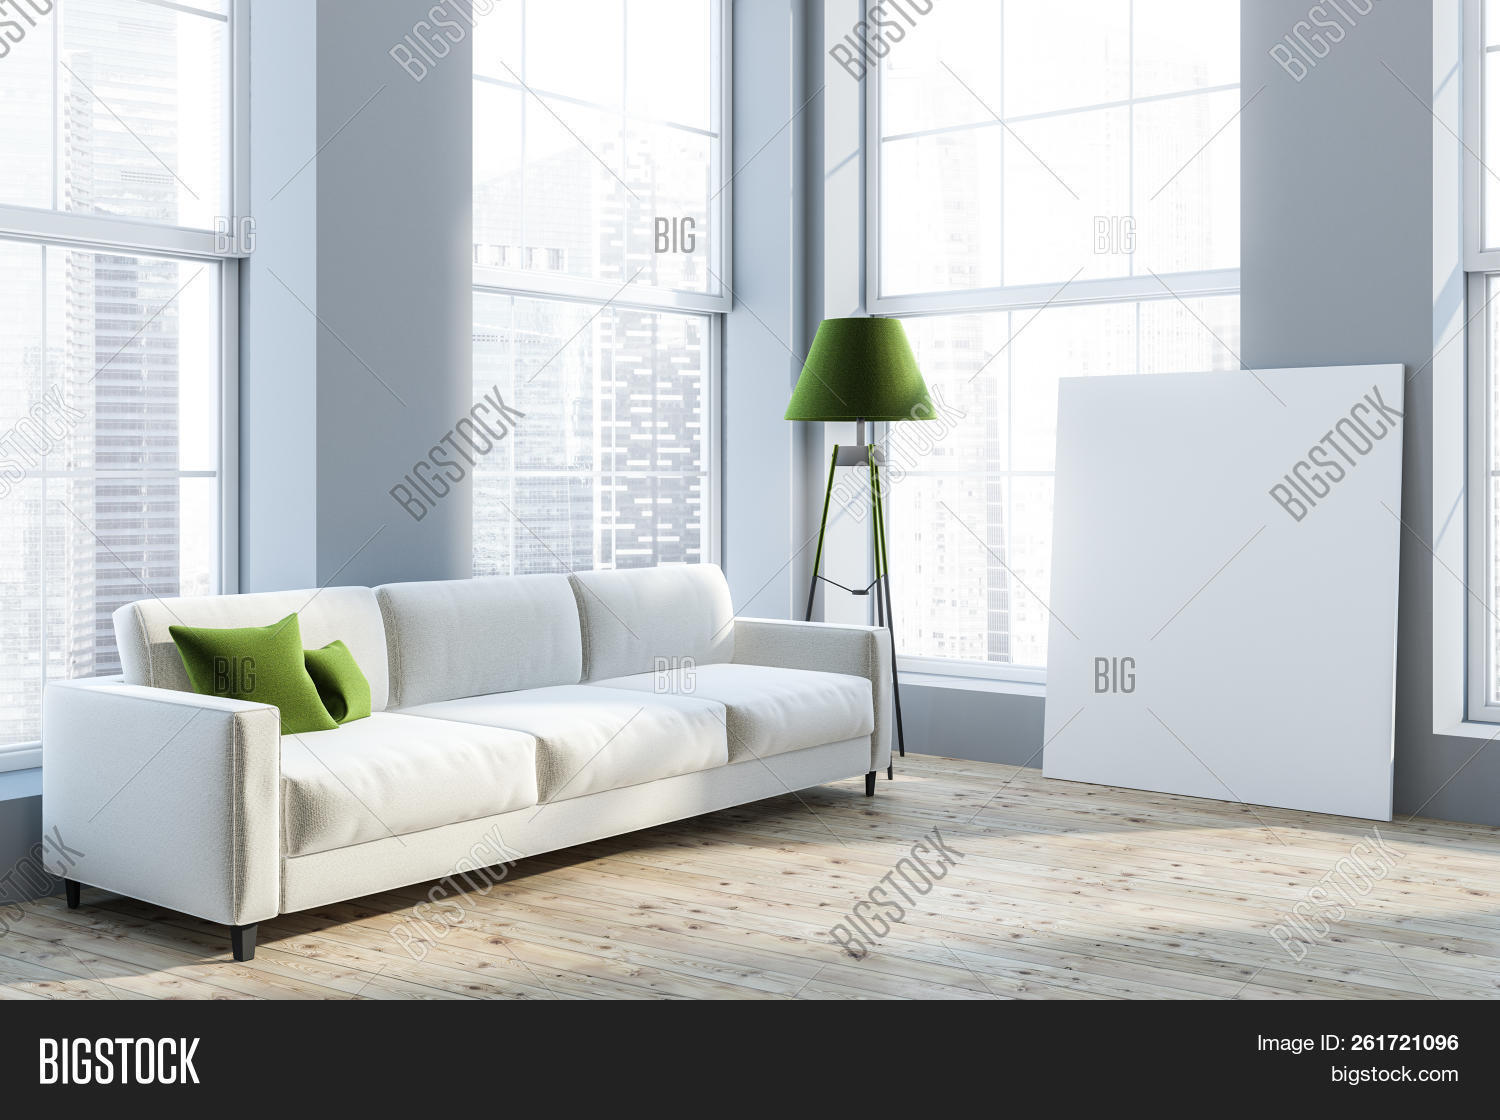 green cushions living room red cream and black ideas luxury image photo free trial bigstock interior with gray walls wooden floor white sofa